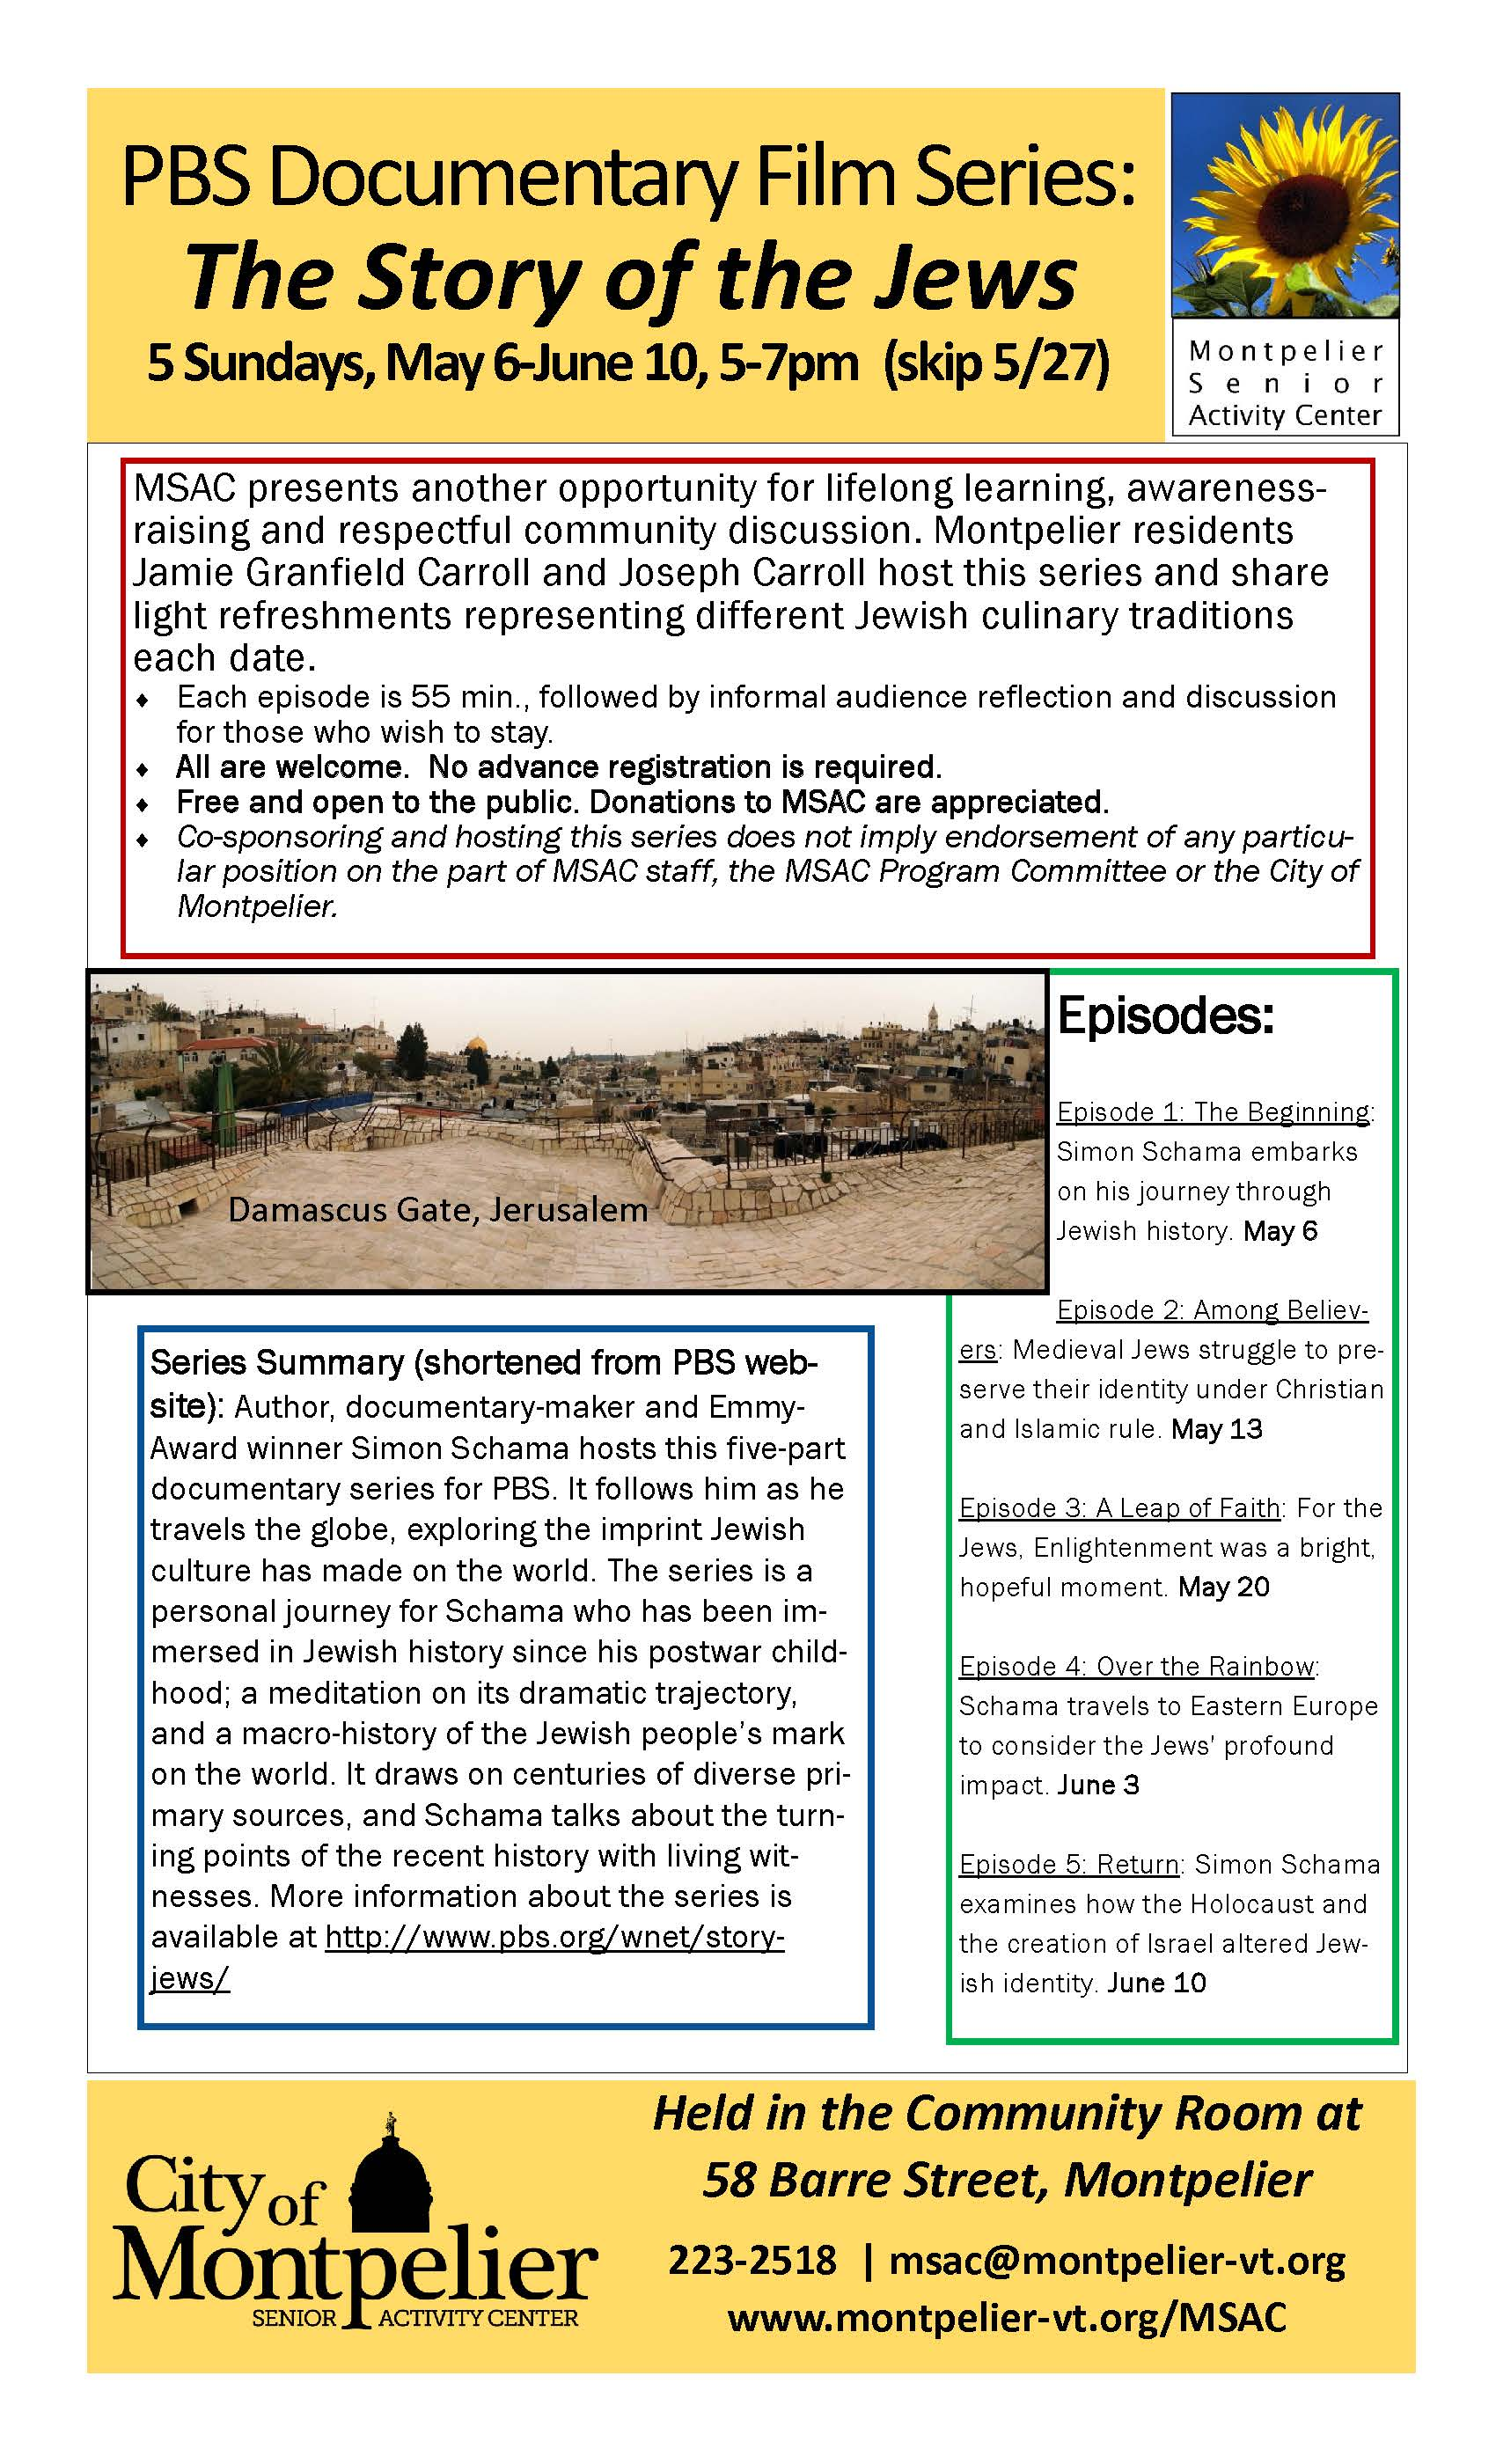 PBS Film Series - Story of the Jews - at MSAC May-June 2018